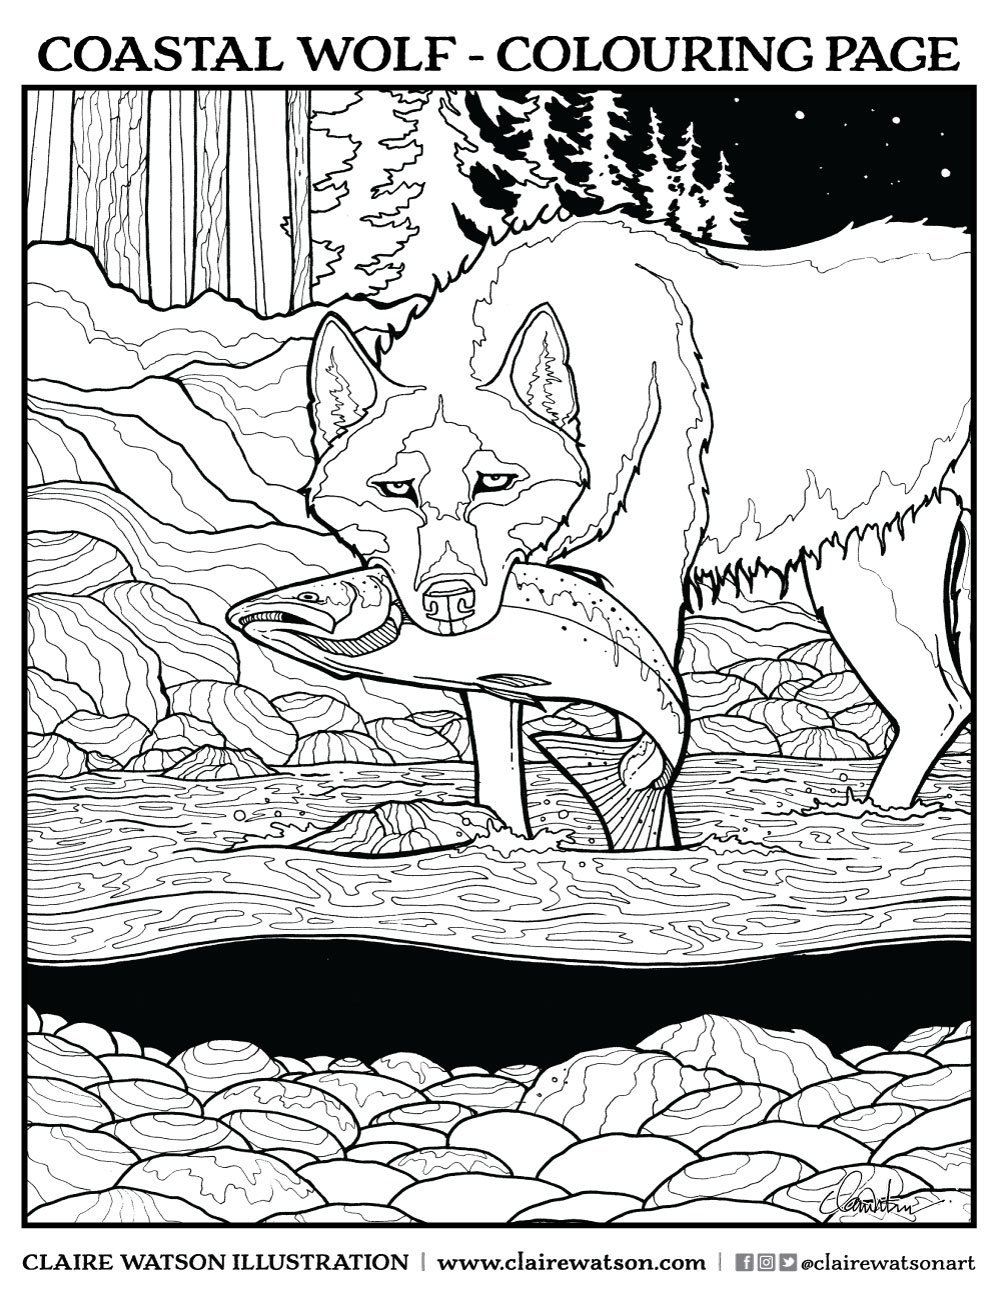 coastal-wolf-coloring-page-claire-watson.jpg